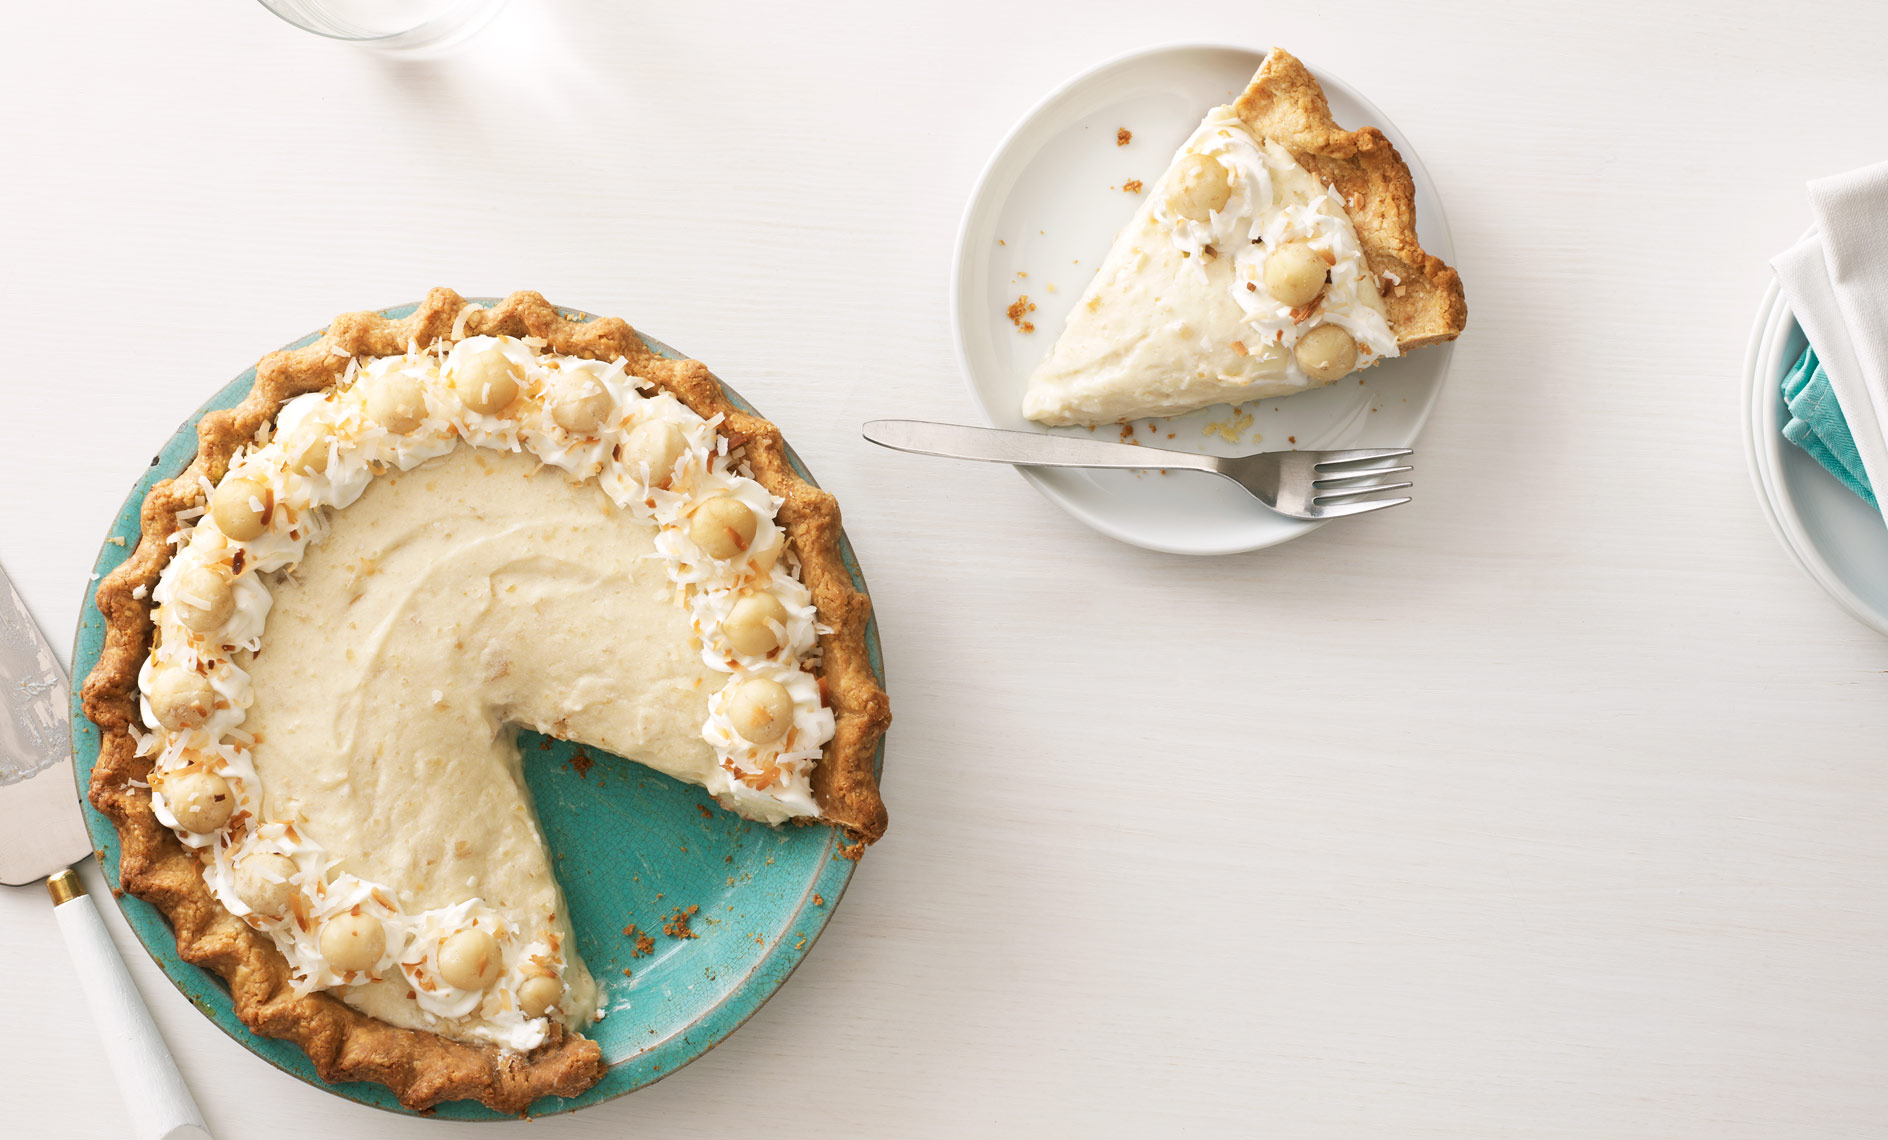 Macadamia Cream Pie